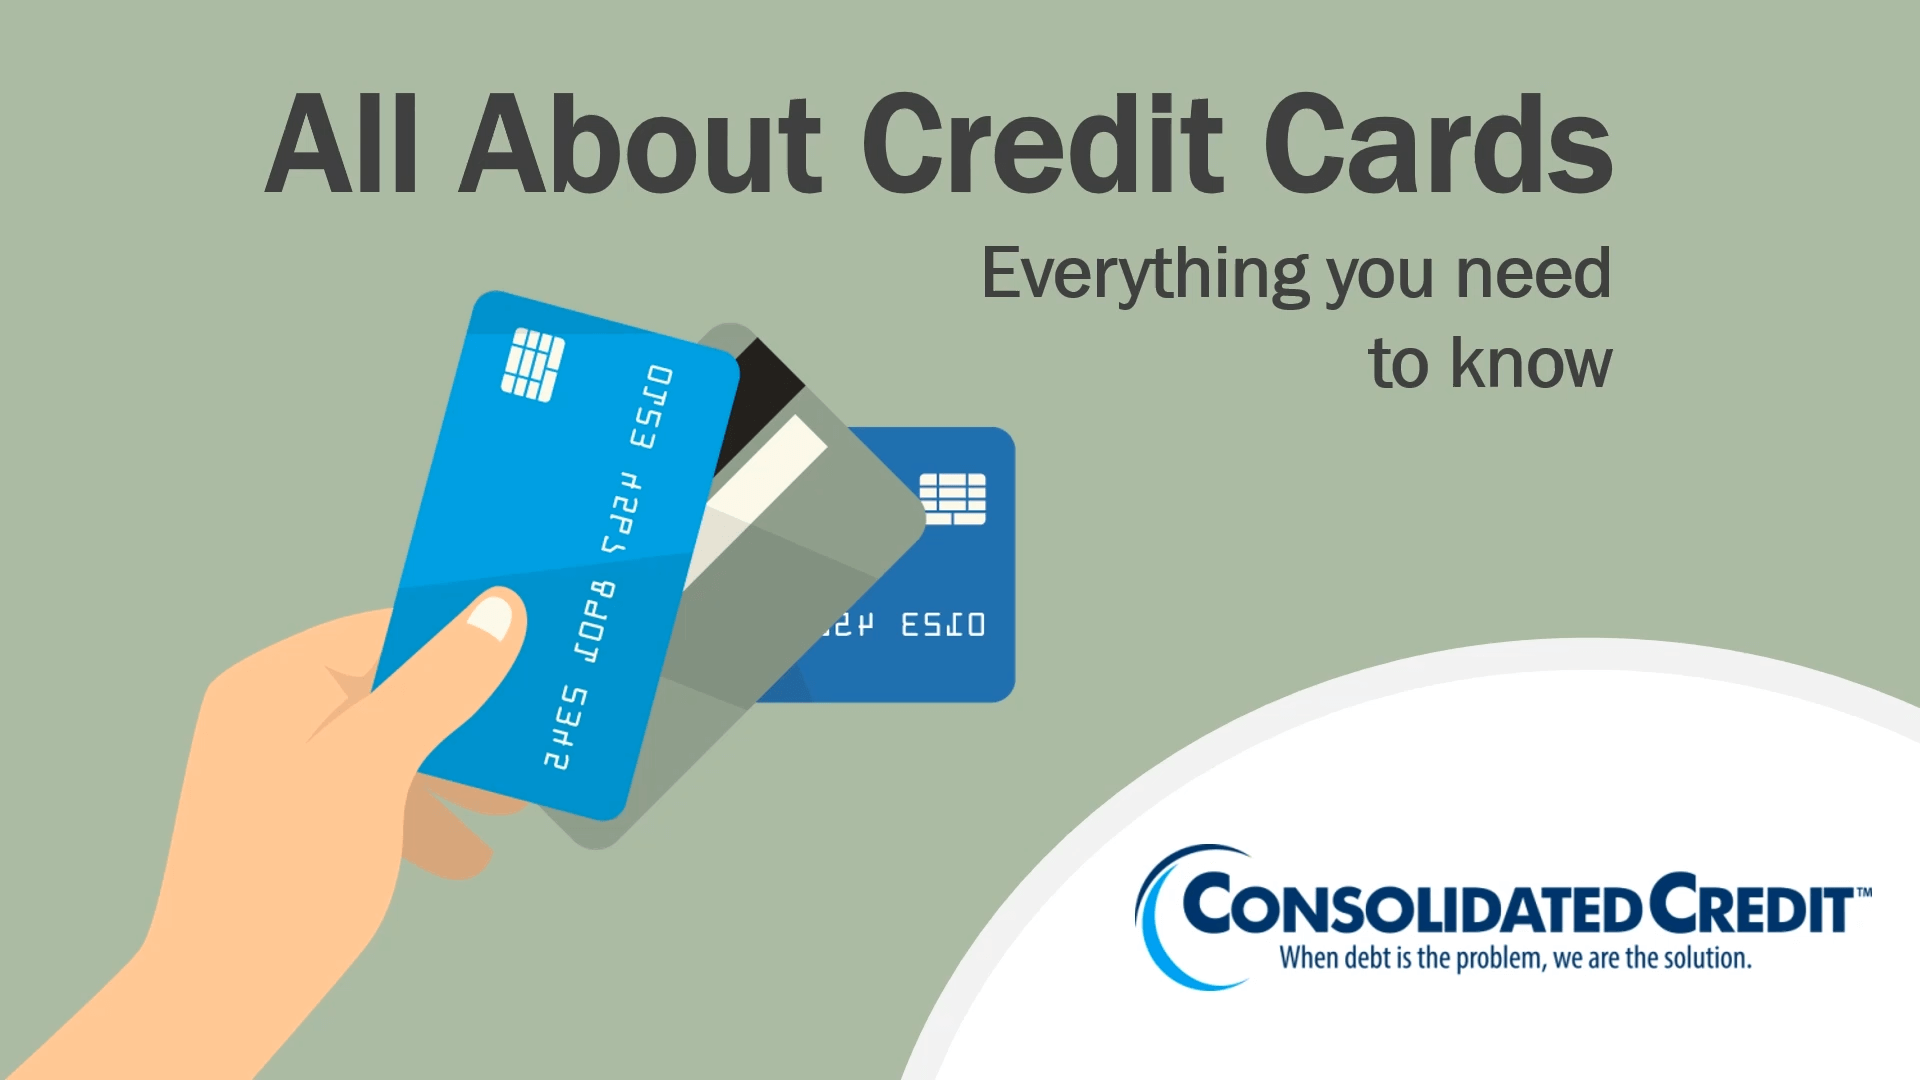 All about Credit Cards: Everything you need to know